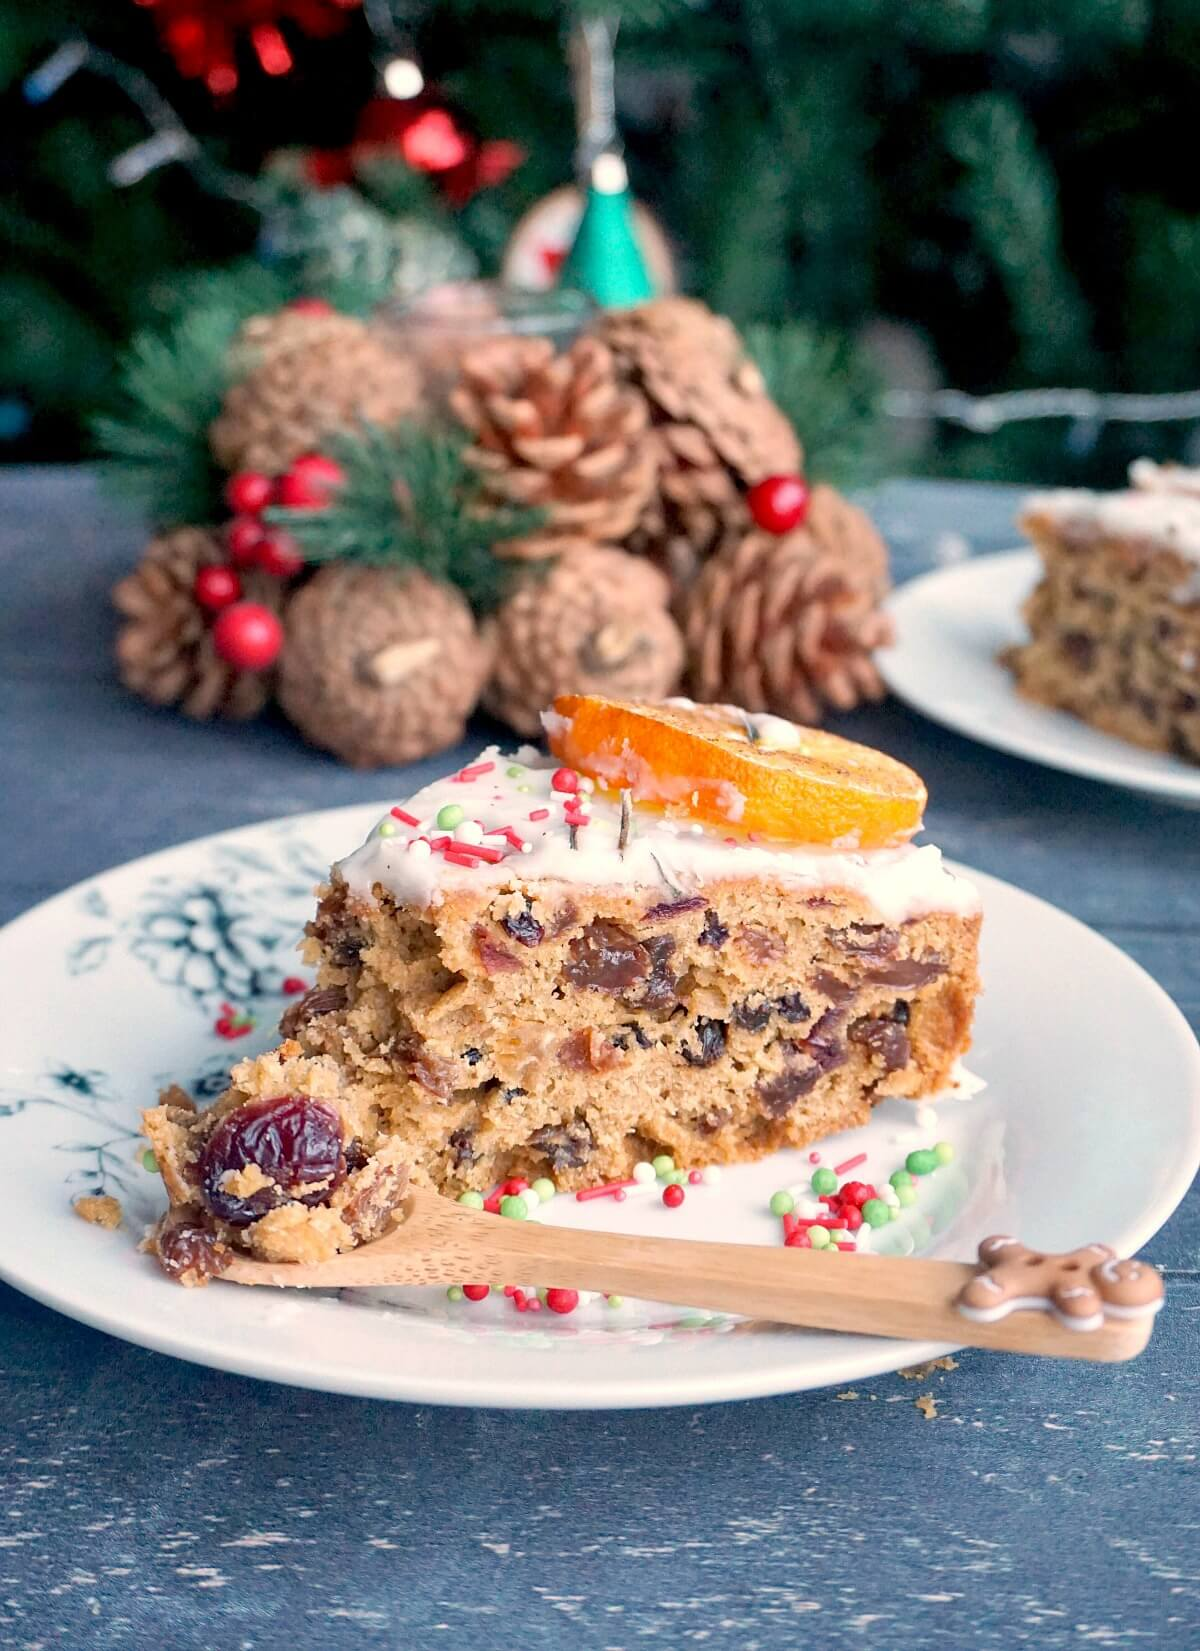 A slice of fruit cake and a wooden dessert spoon on a white plate with Christmas decorations in the background